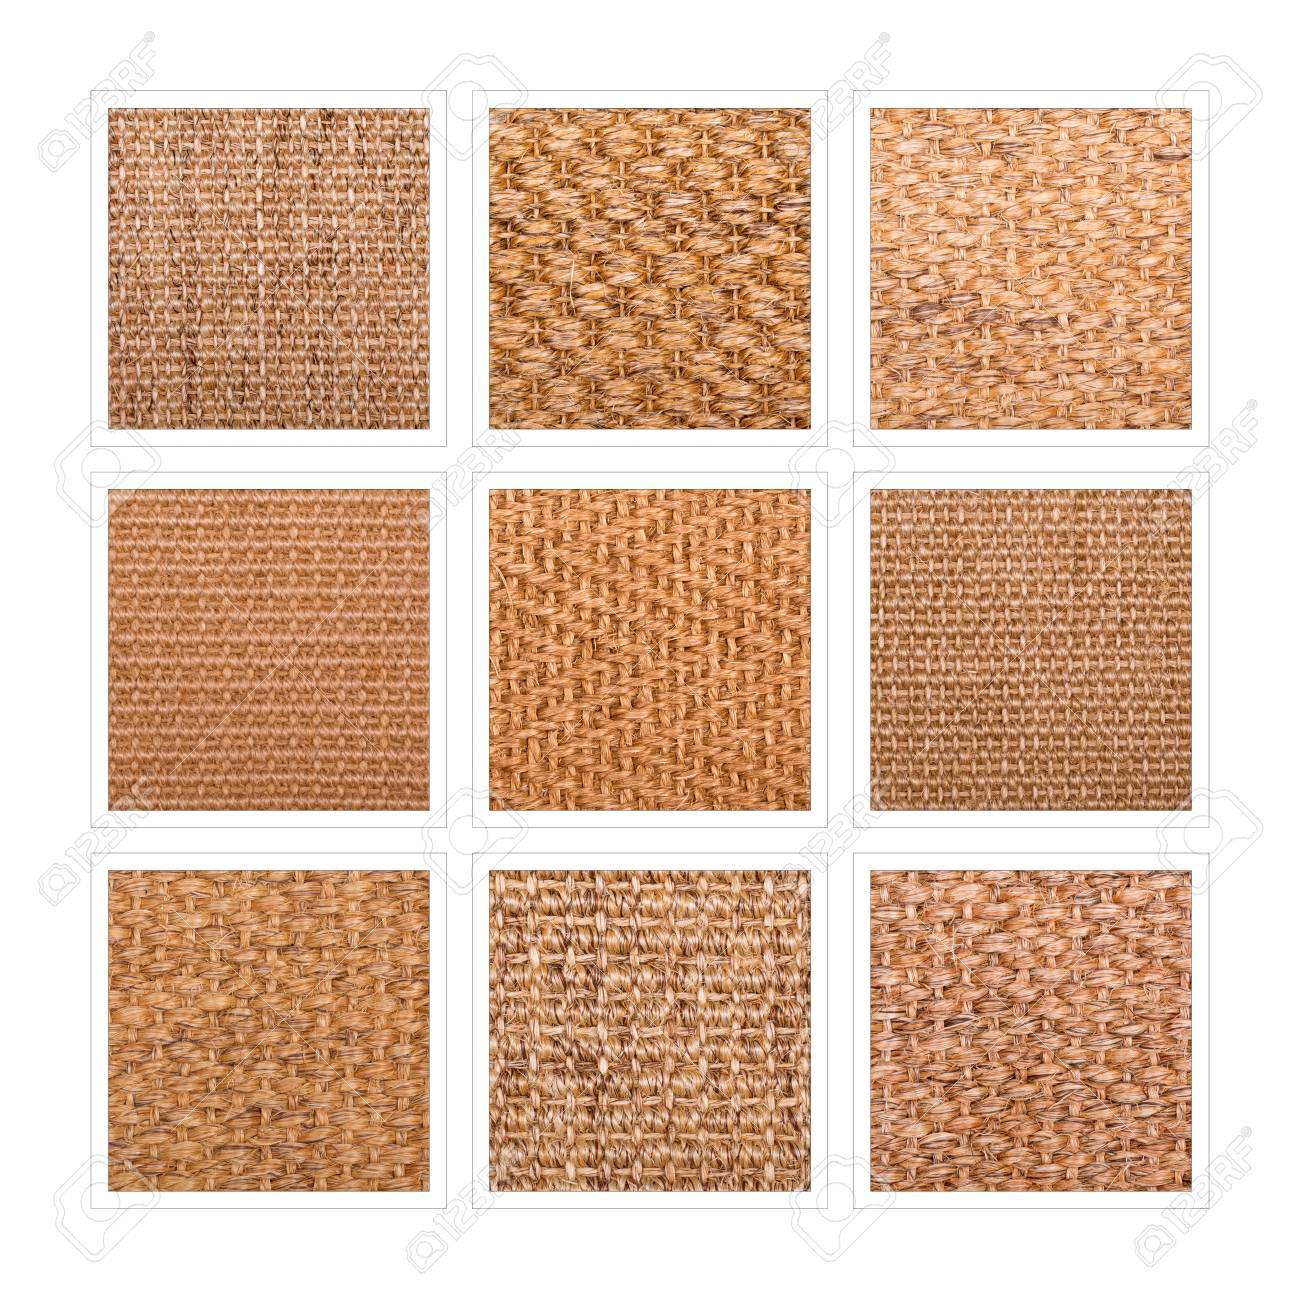 A nine square collage of sisal flooring samples showing a variety of weaves and patterns. - 62251717